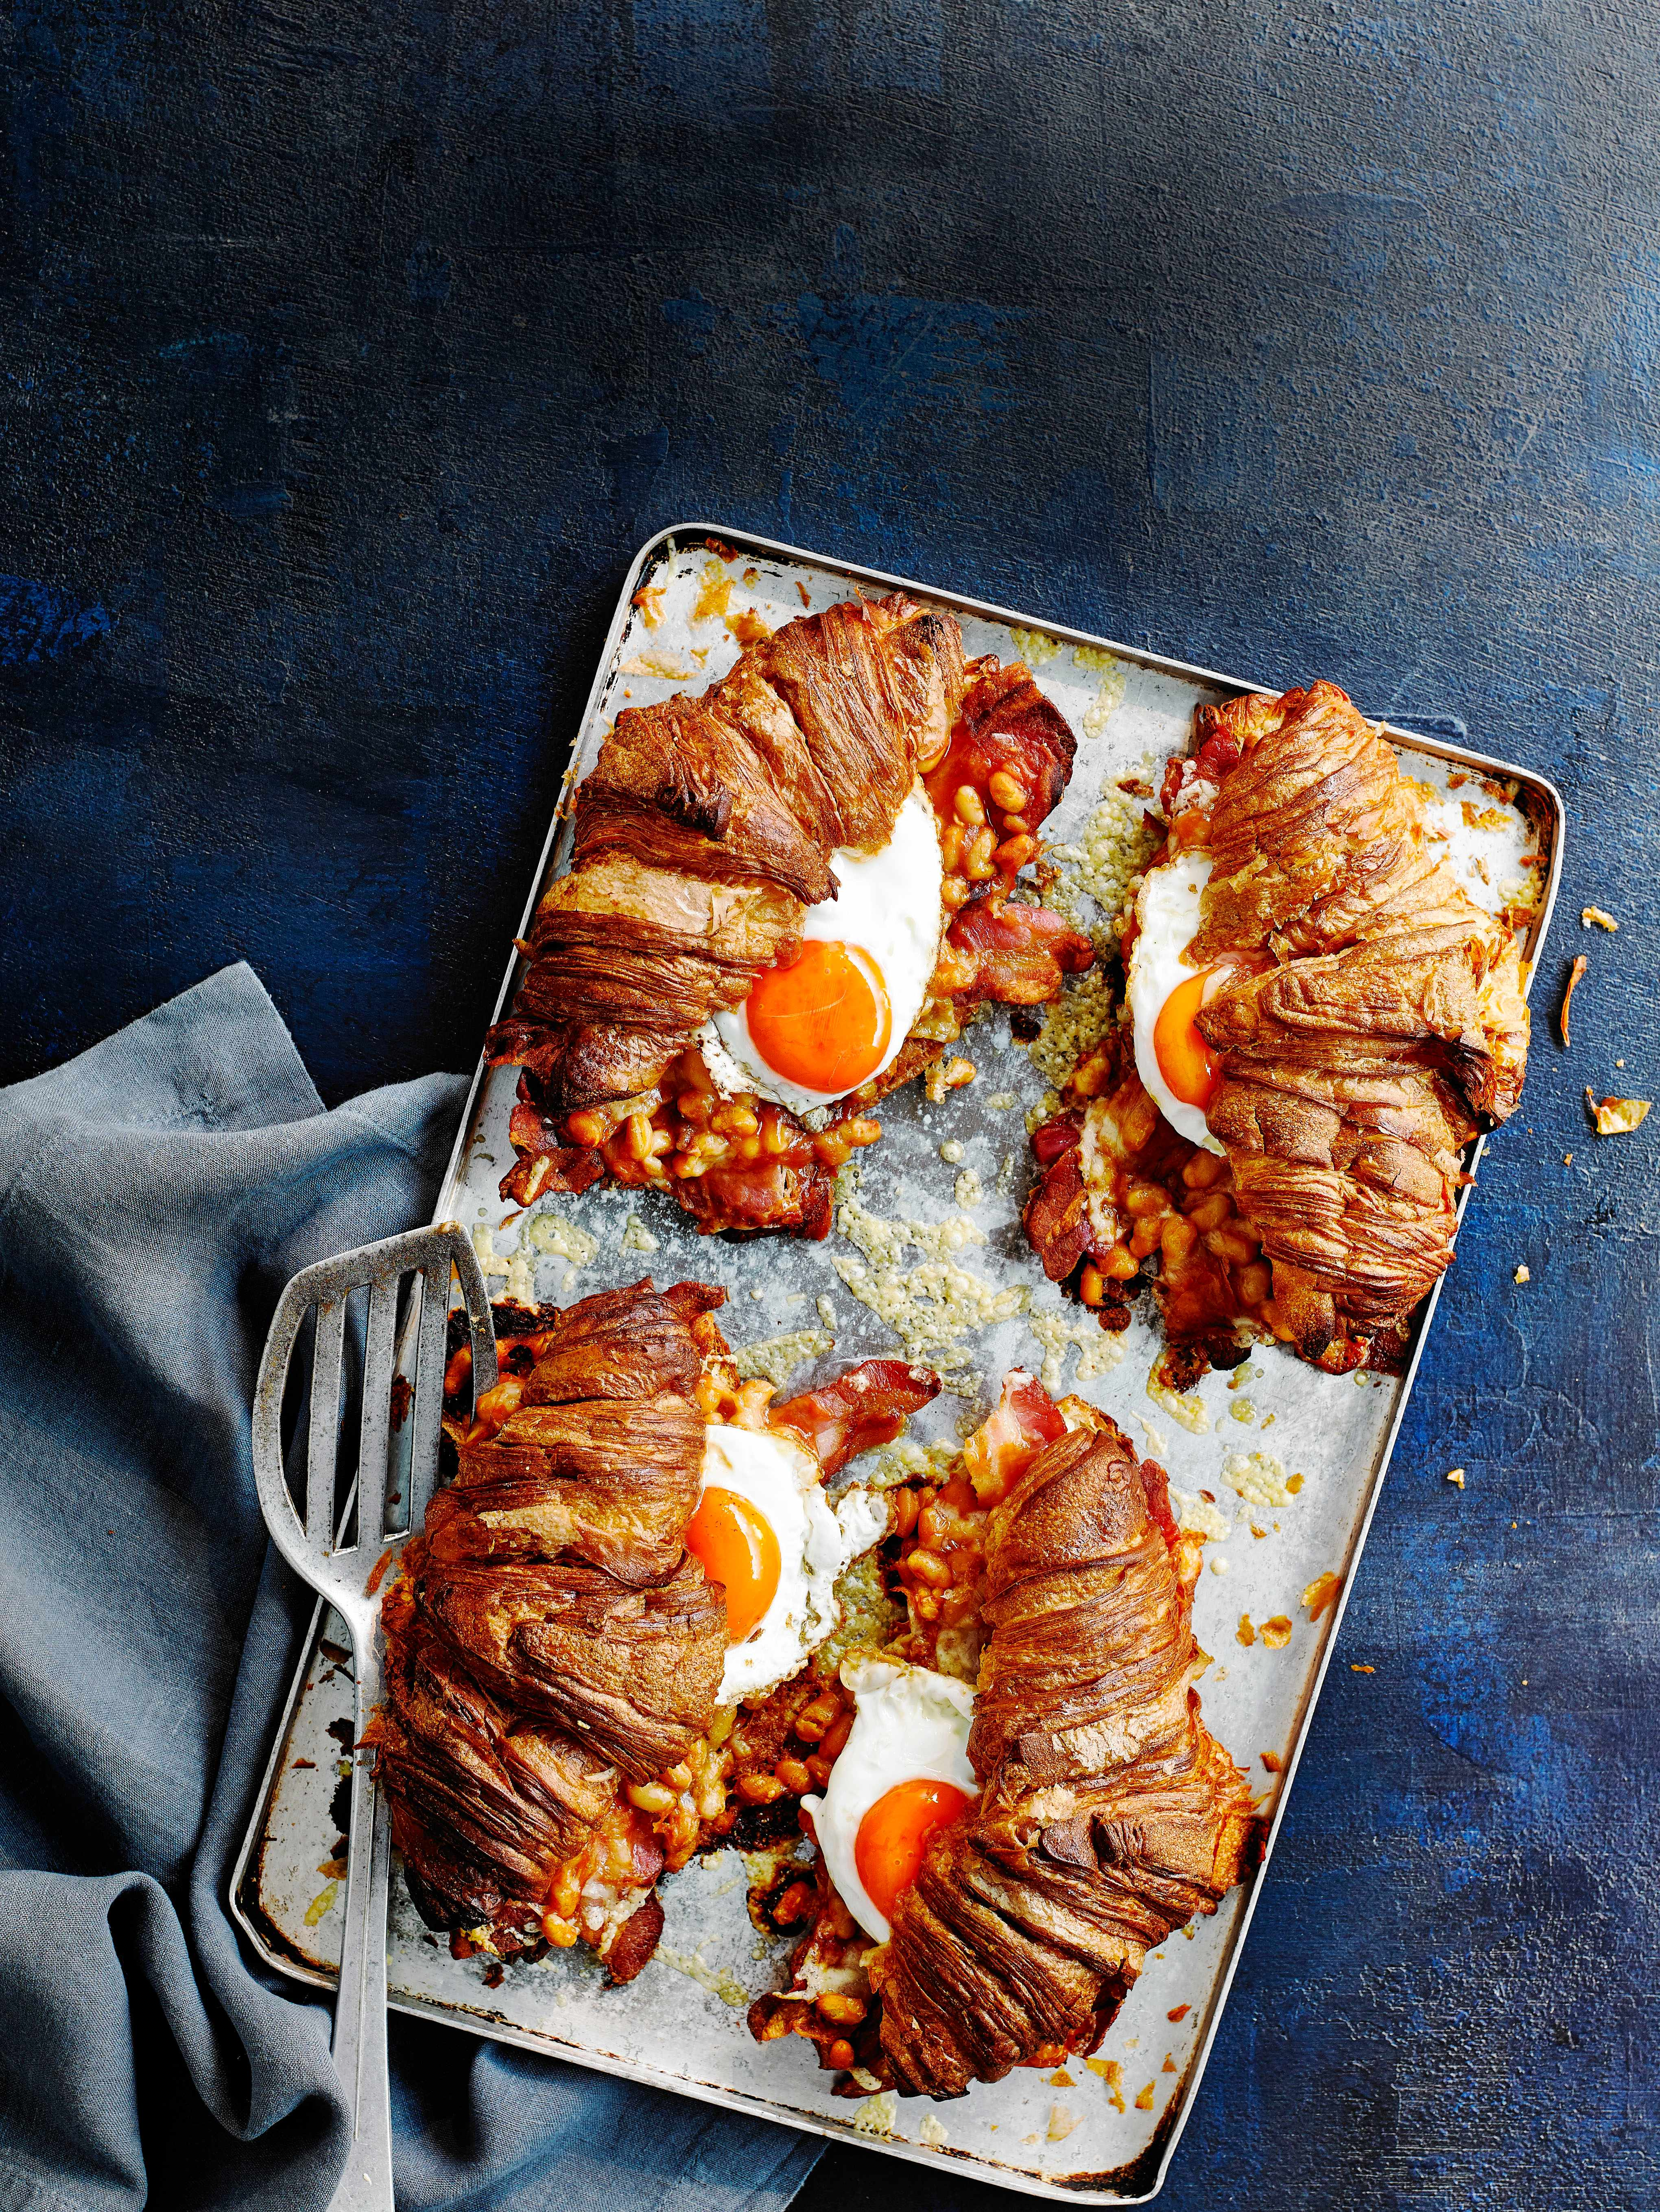 Croissant Sandwich Recipe with Bacon and Eggs